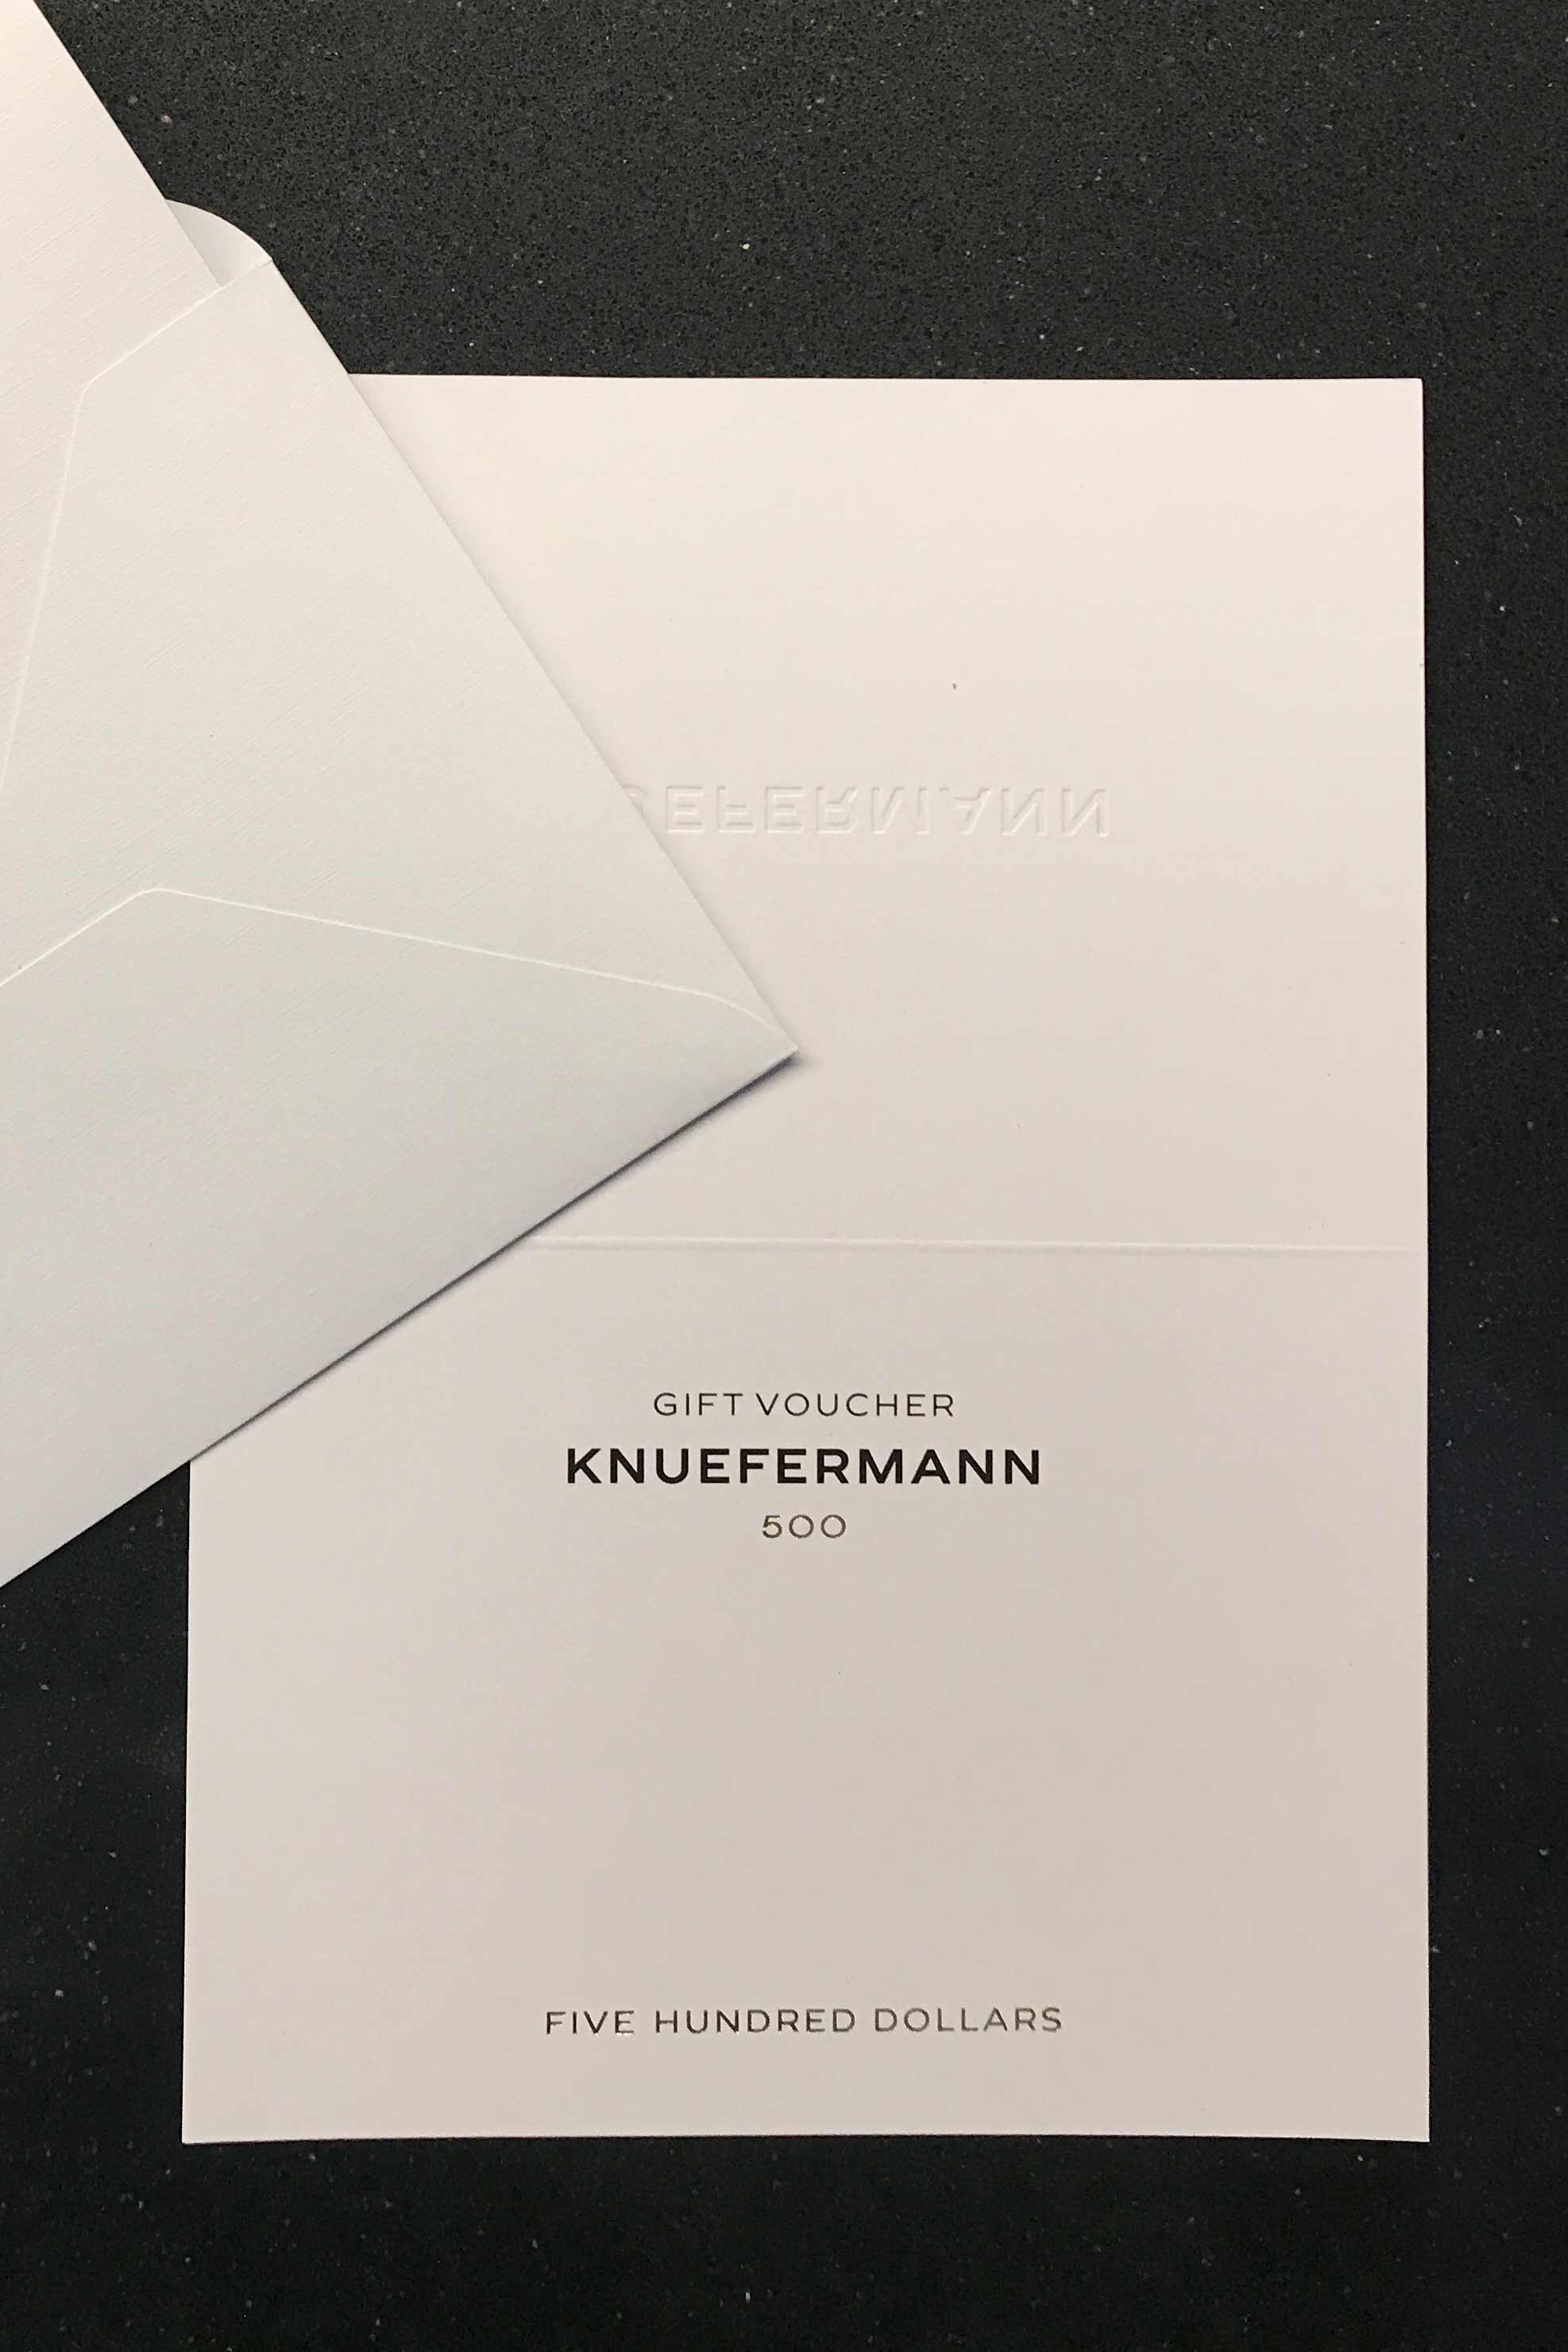 GIFT VOUCHER $500 - KNUEFERMANN